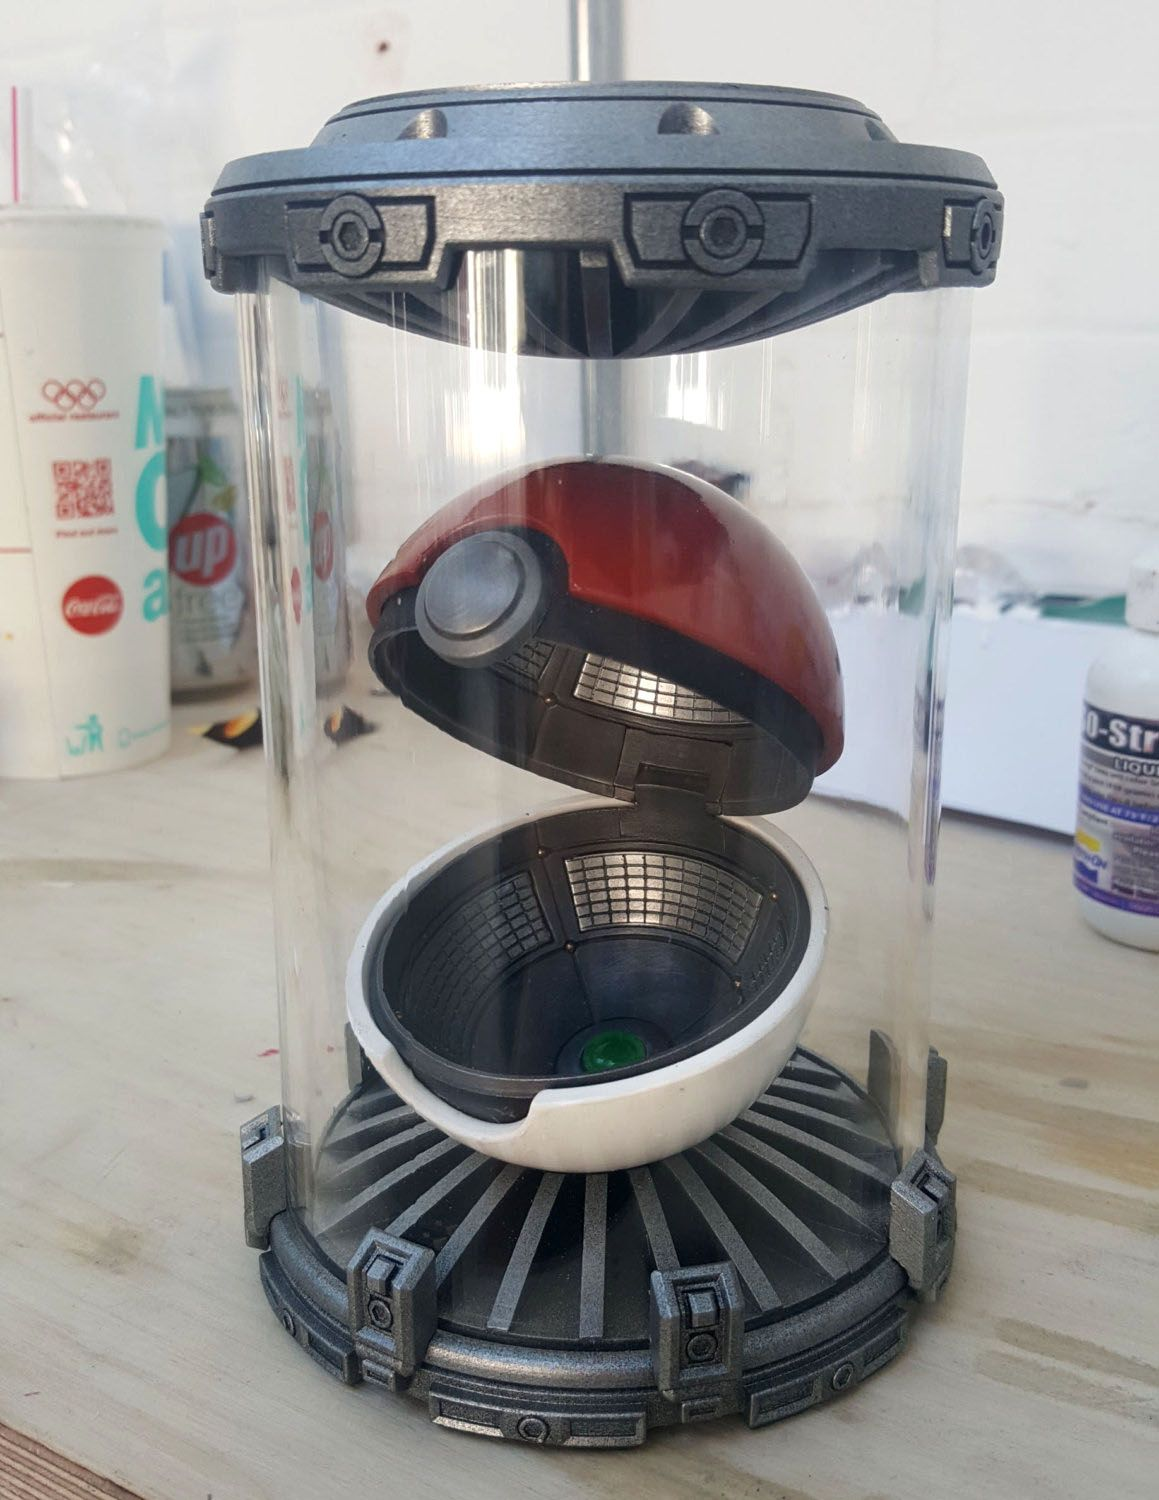 Pokeball Display Unit